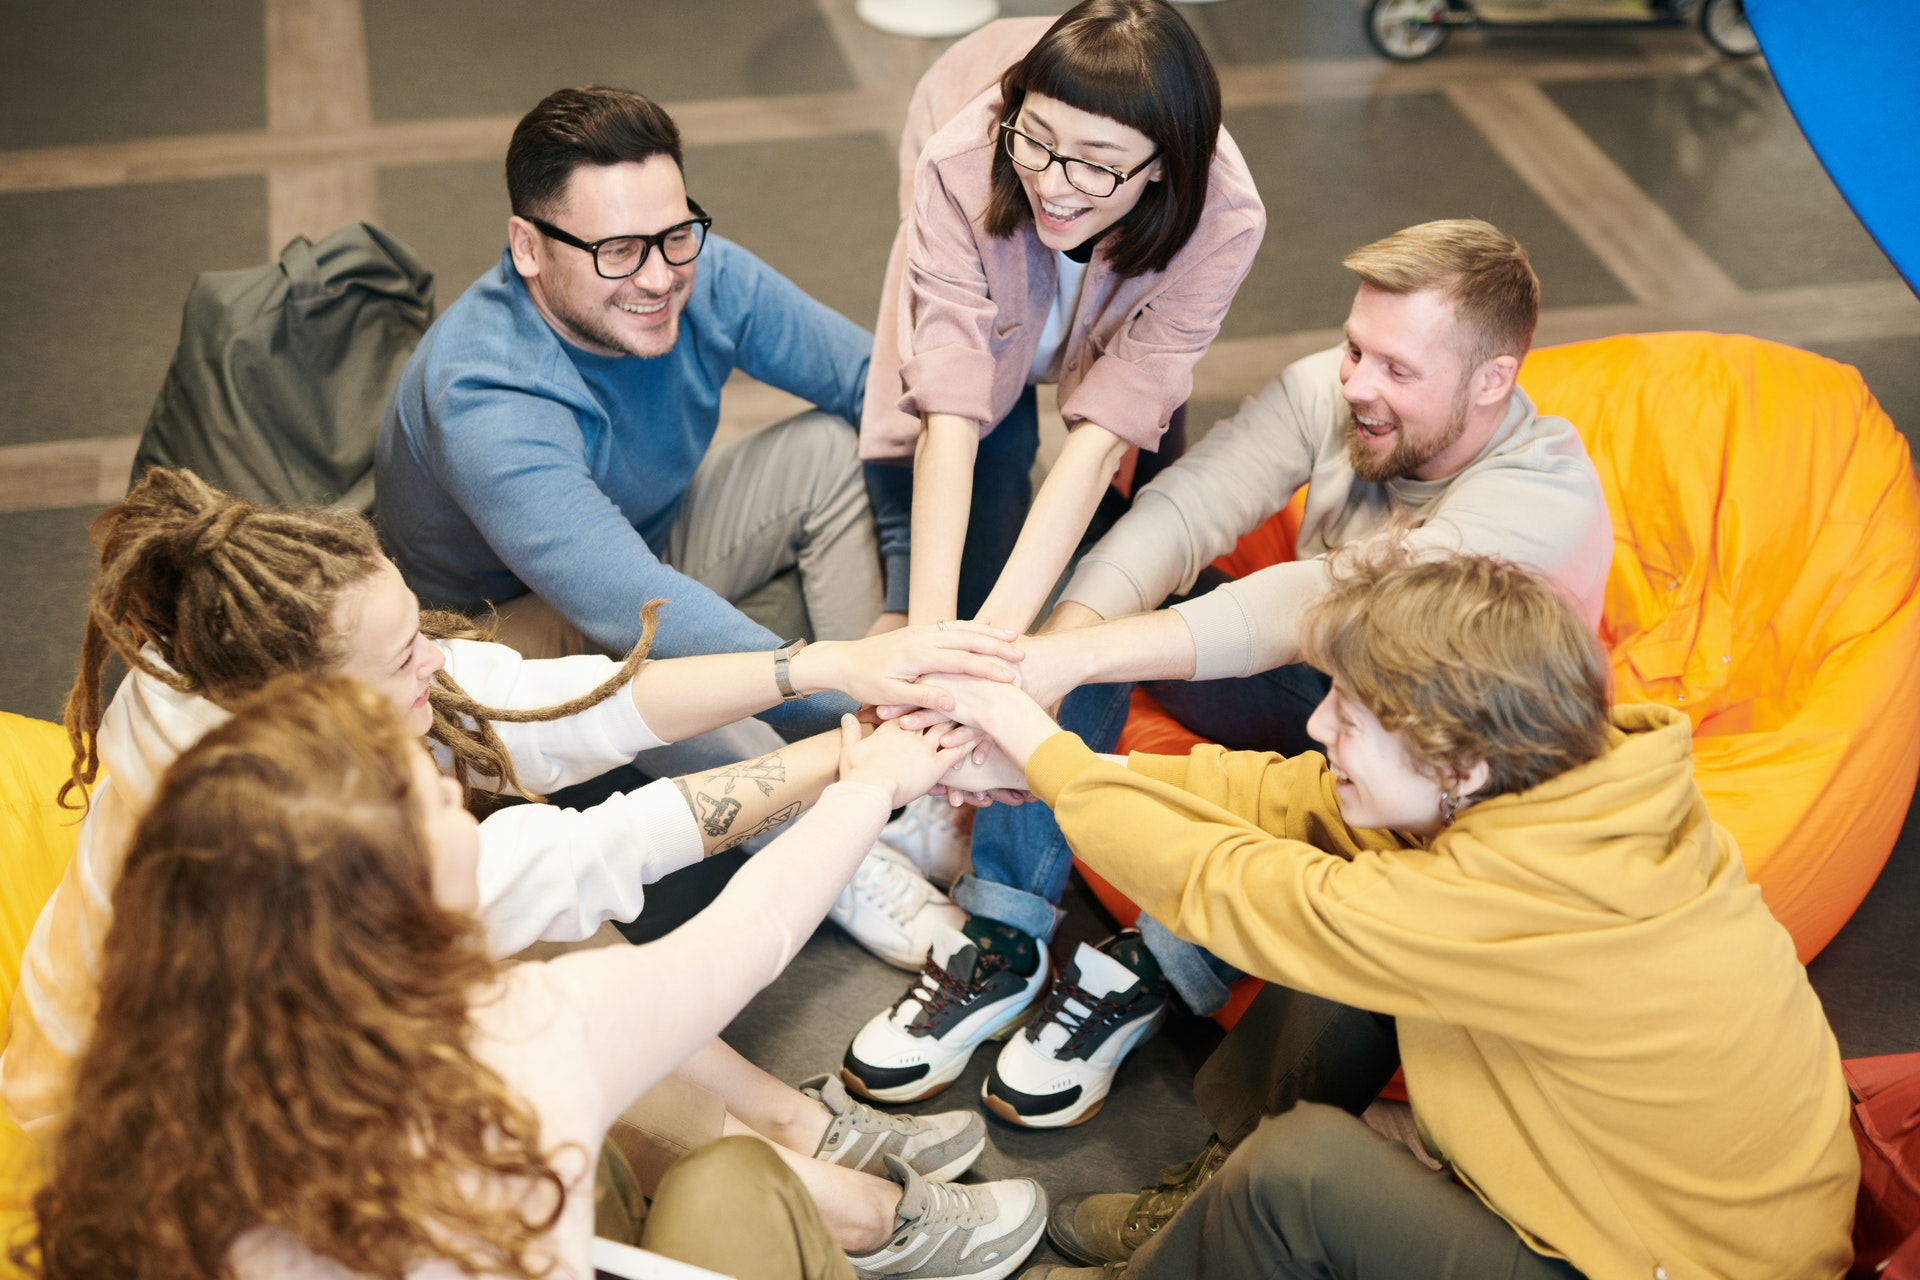 Fast Track Your Way To Success By Having A Teamwork Mindset